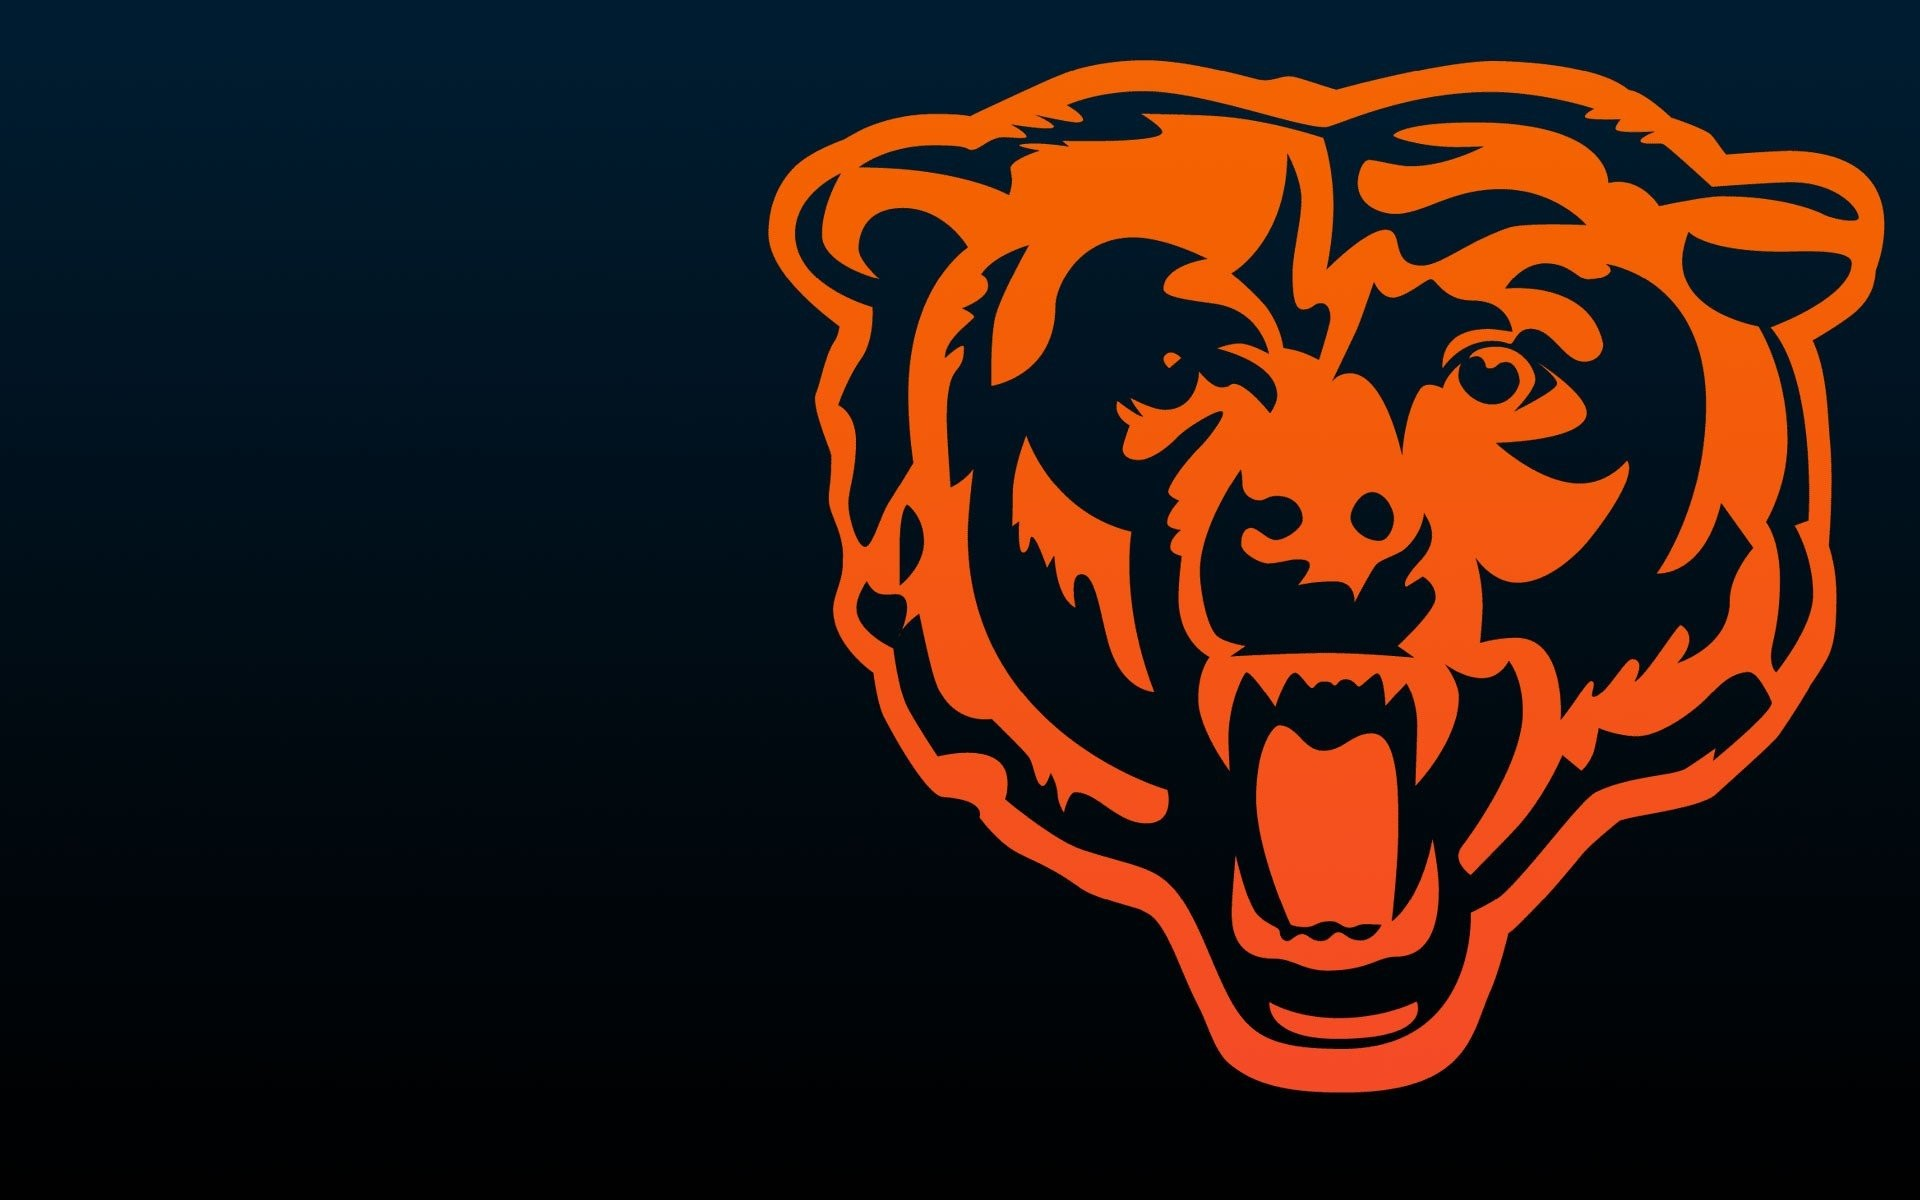 1920x1200 chicago pictures high resolution Chicago Bears wallpaper desktop